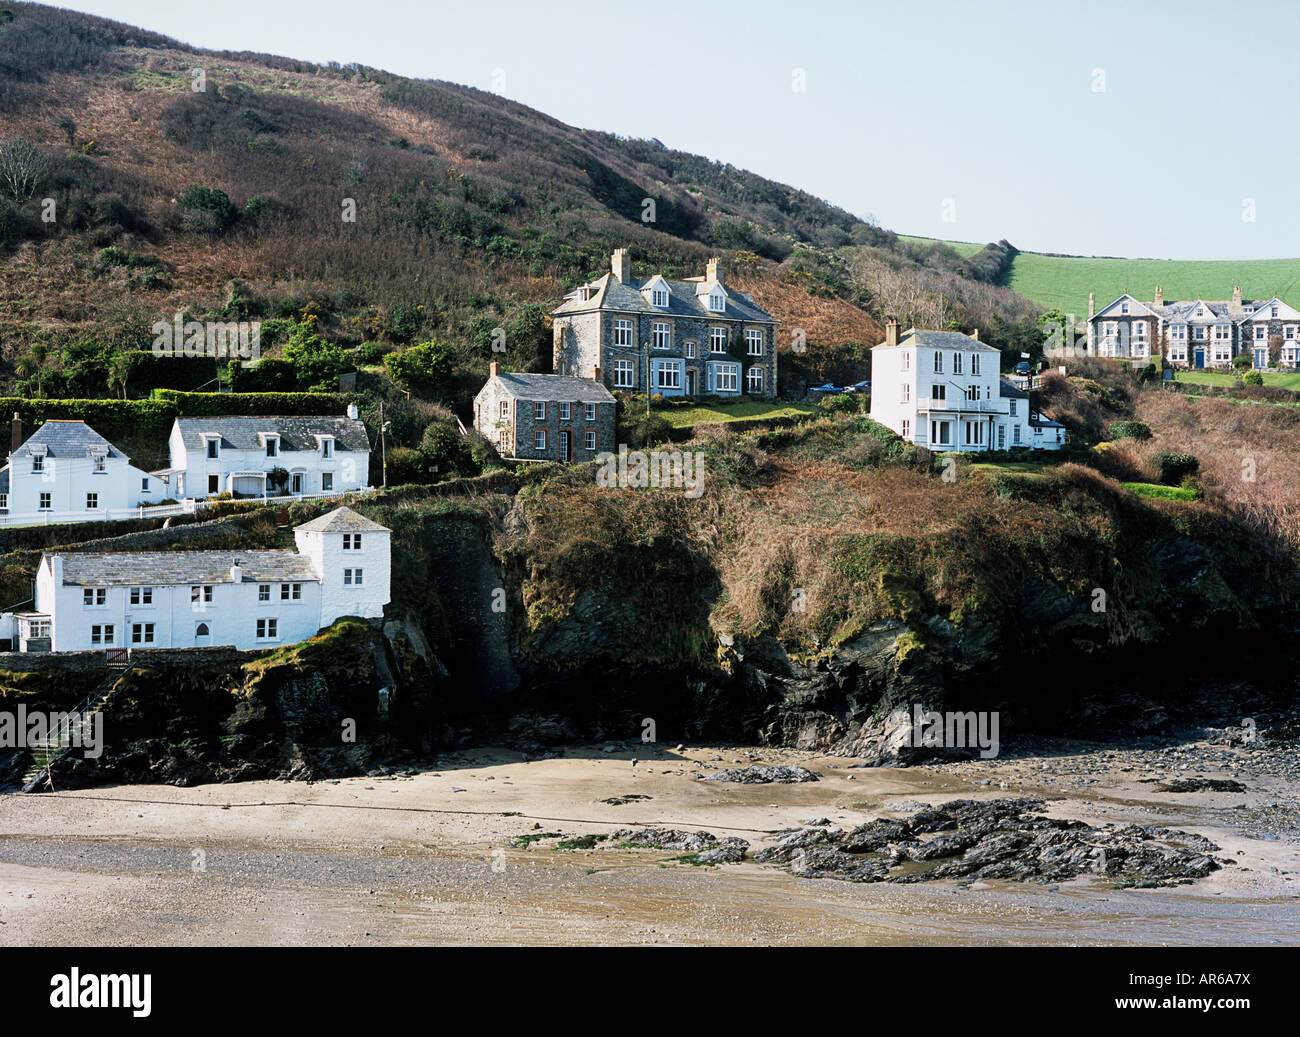 Port isaac cornwall - Stock Image